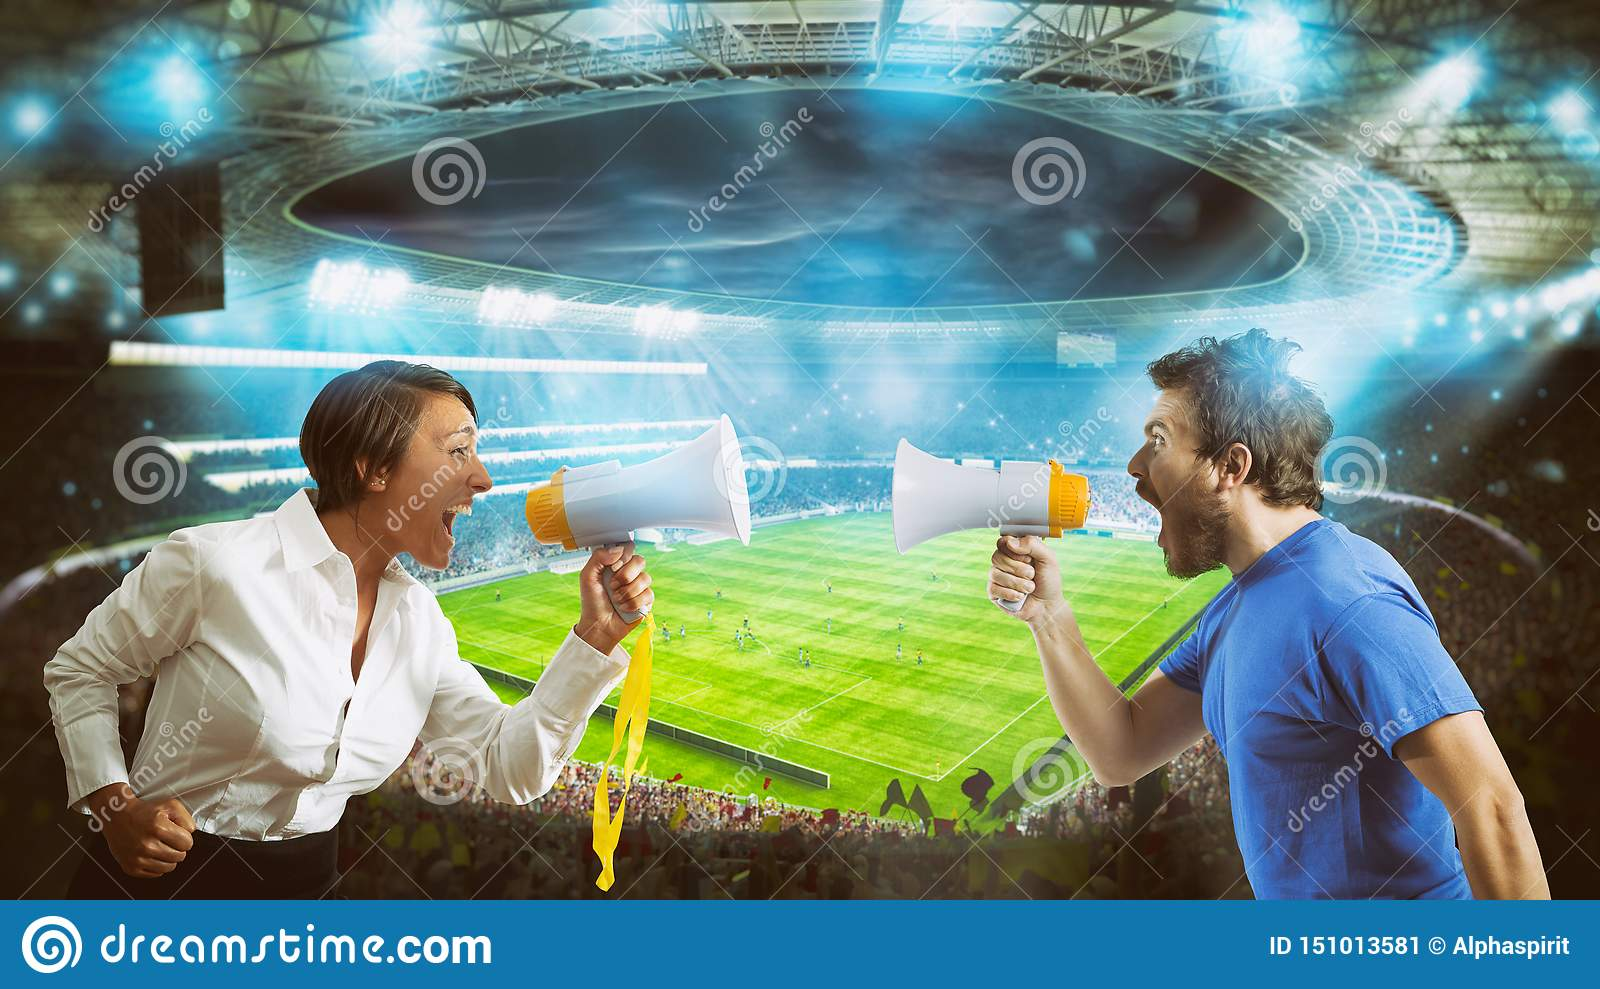 Supporters of opposing teams shout against each other with a megaphone at the stadium during a football match